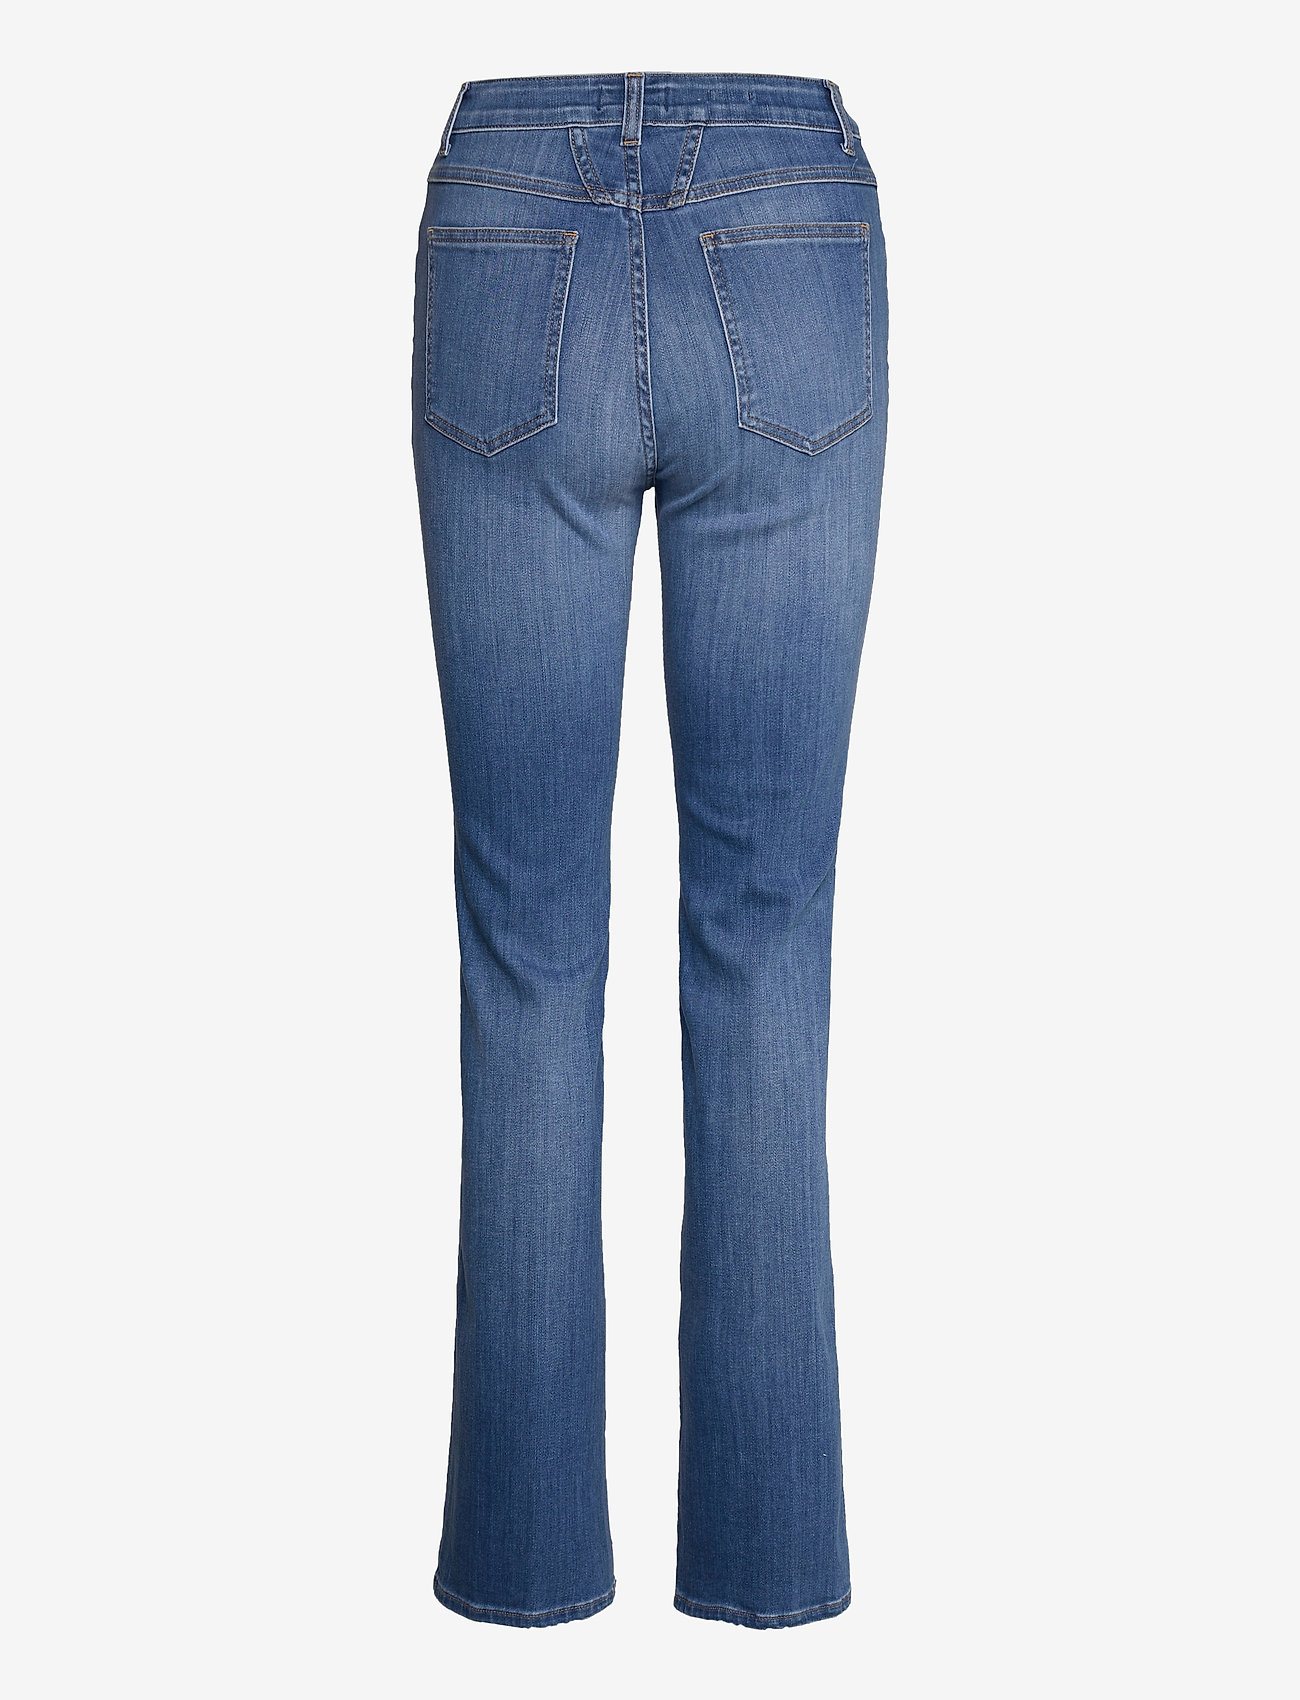 Closed - leaf - boot cut jeans - mid blue - 1